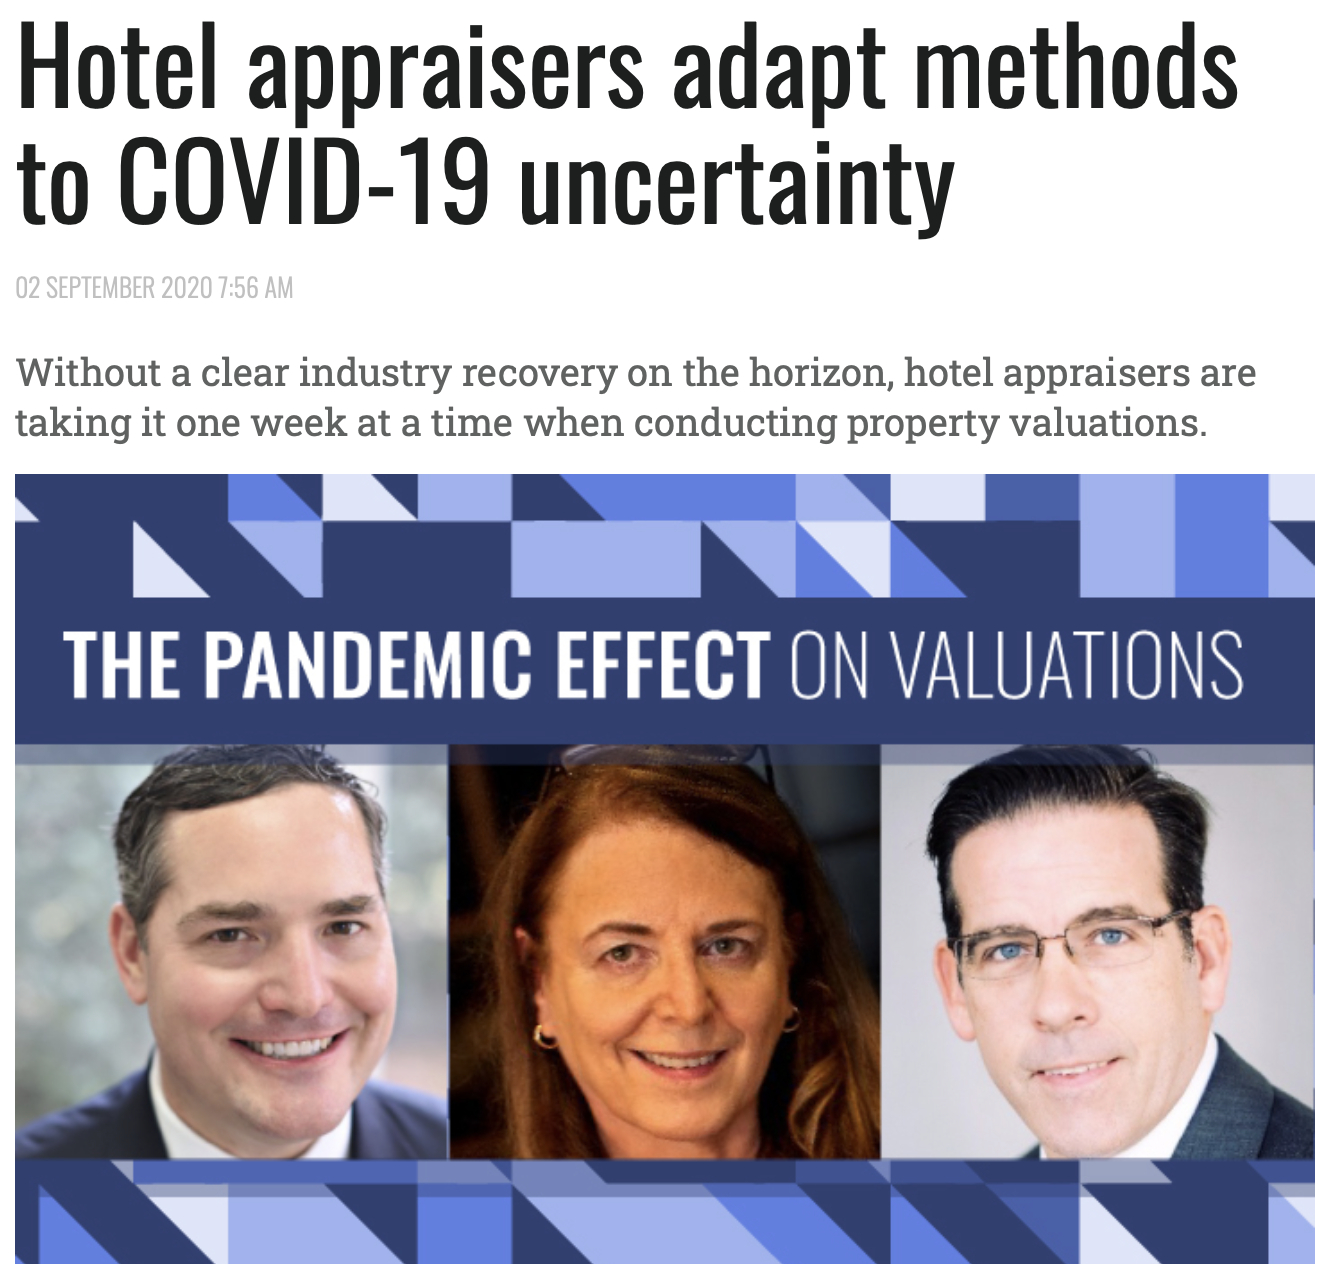 Hotel appraisers adapt methods to COVID-19 uncertainty